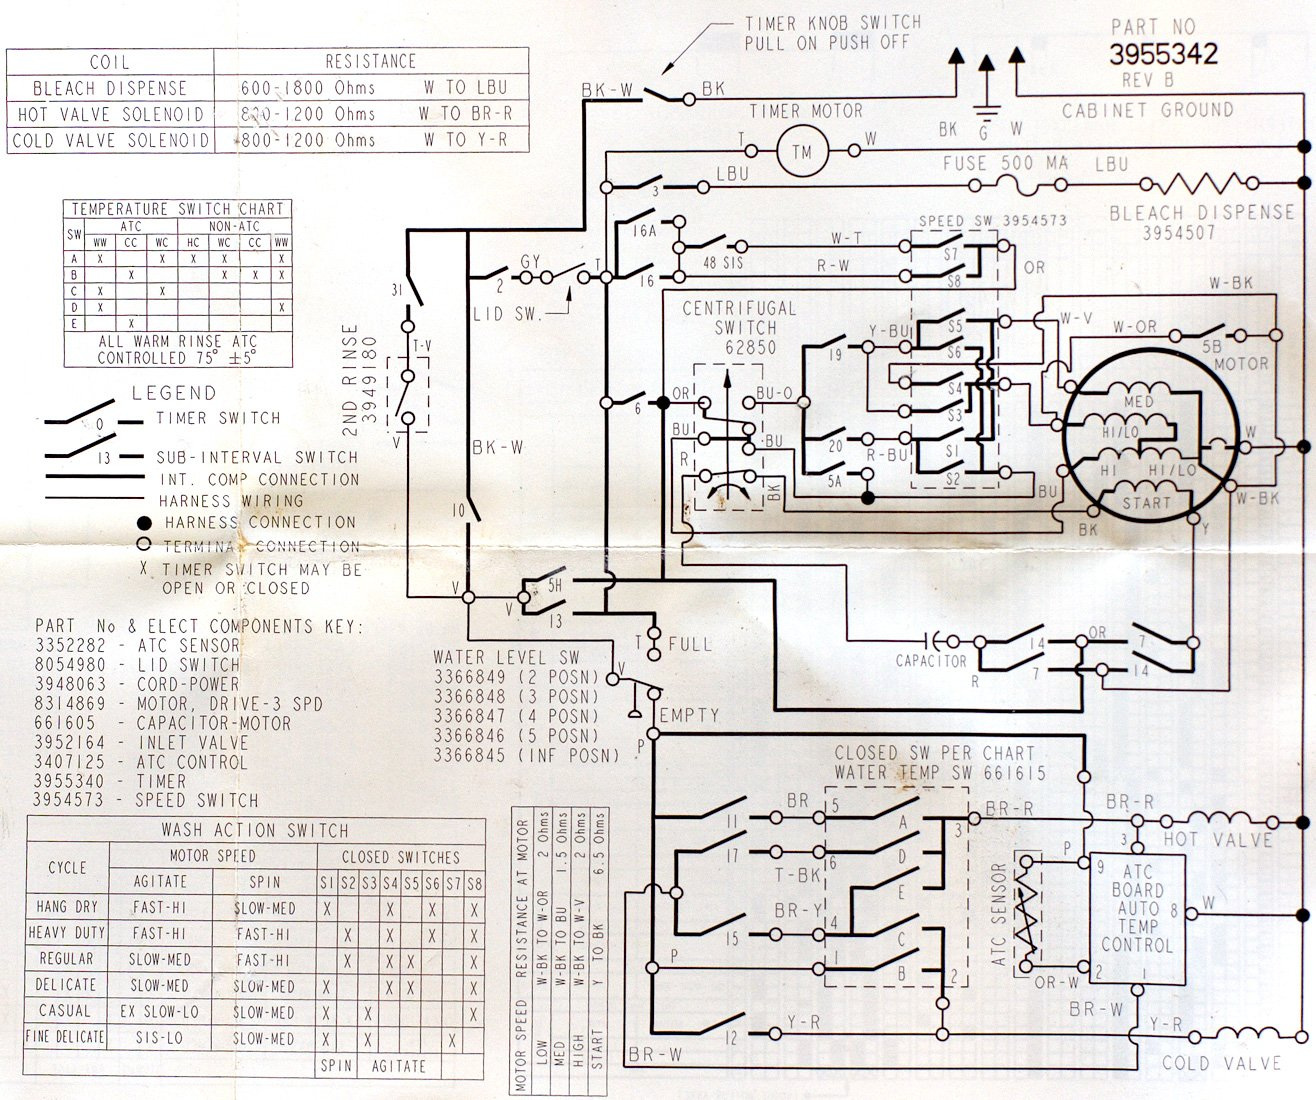 Washer Motor Wiring Diagram And Schematics Ge Dryer Timer Private Sharing About Source I Have A 3 Sd Out Of Kenmore Washing Machine Rh